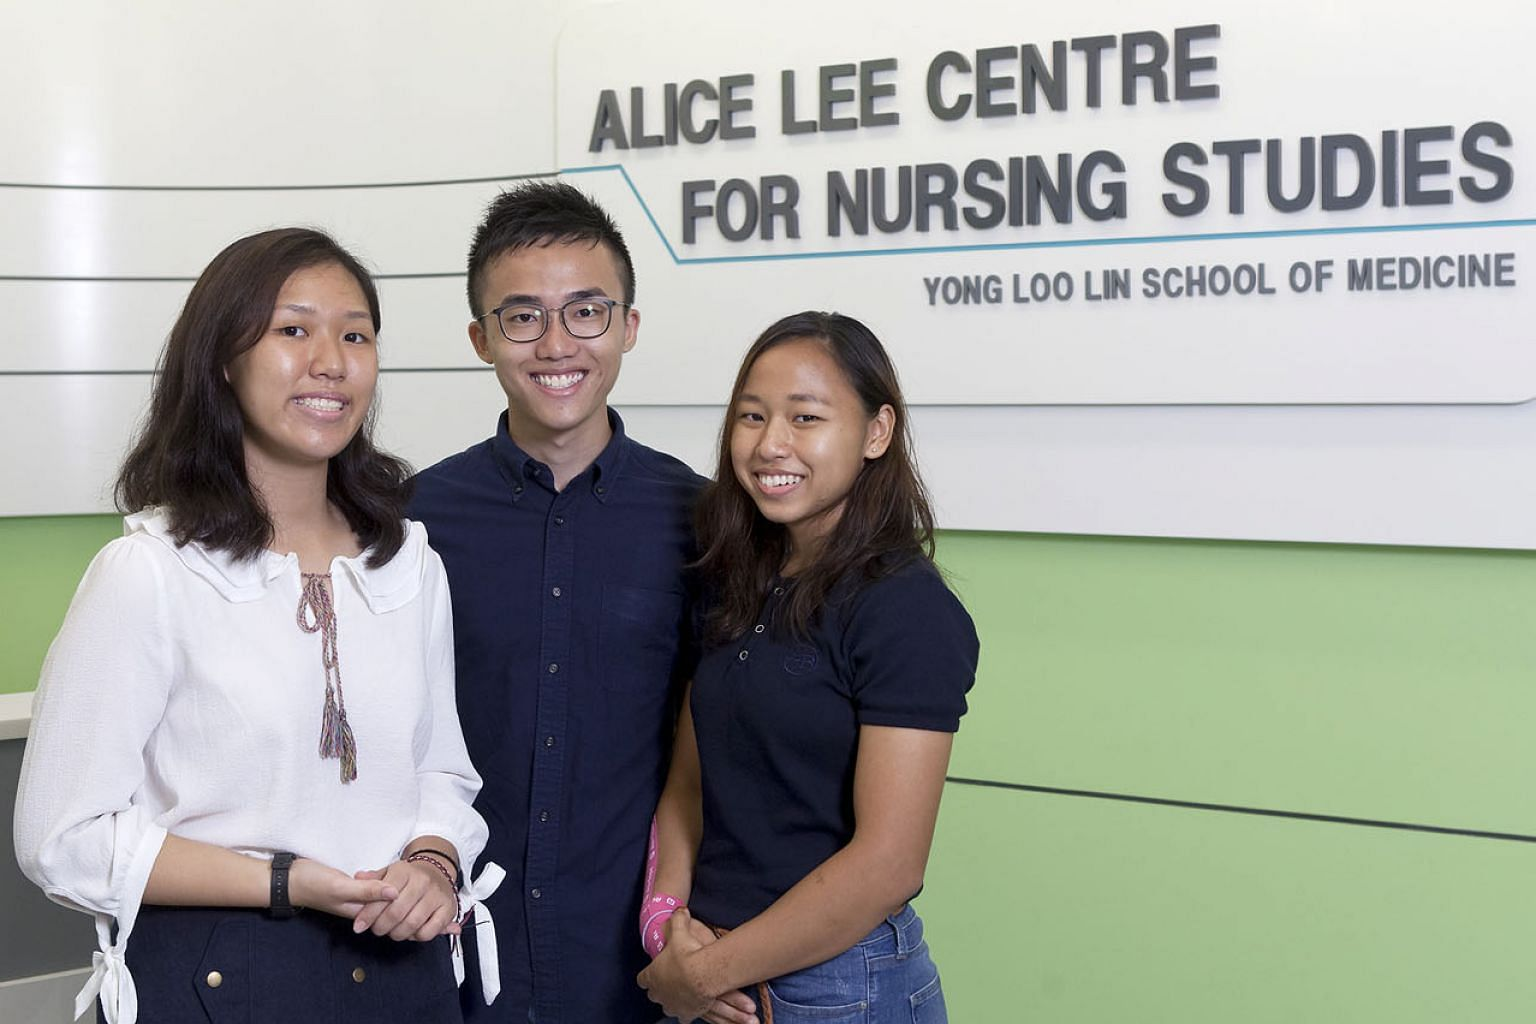 From far left: Ms Lim Xin Min, Mr Tan Jung Howe and Ms Nur Diyana Sapri are among the growing number of young people who are showing an interest in the nursing profession. NUS has seen increased demand for its Bachelor of Science, Nursing degrees.